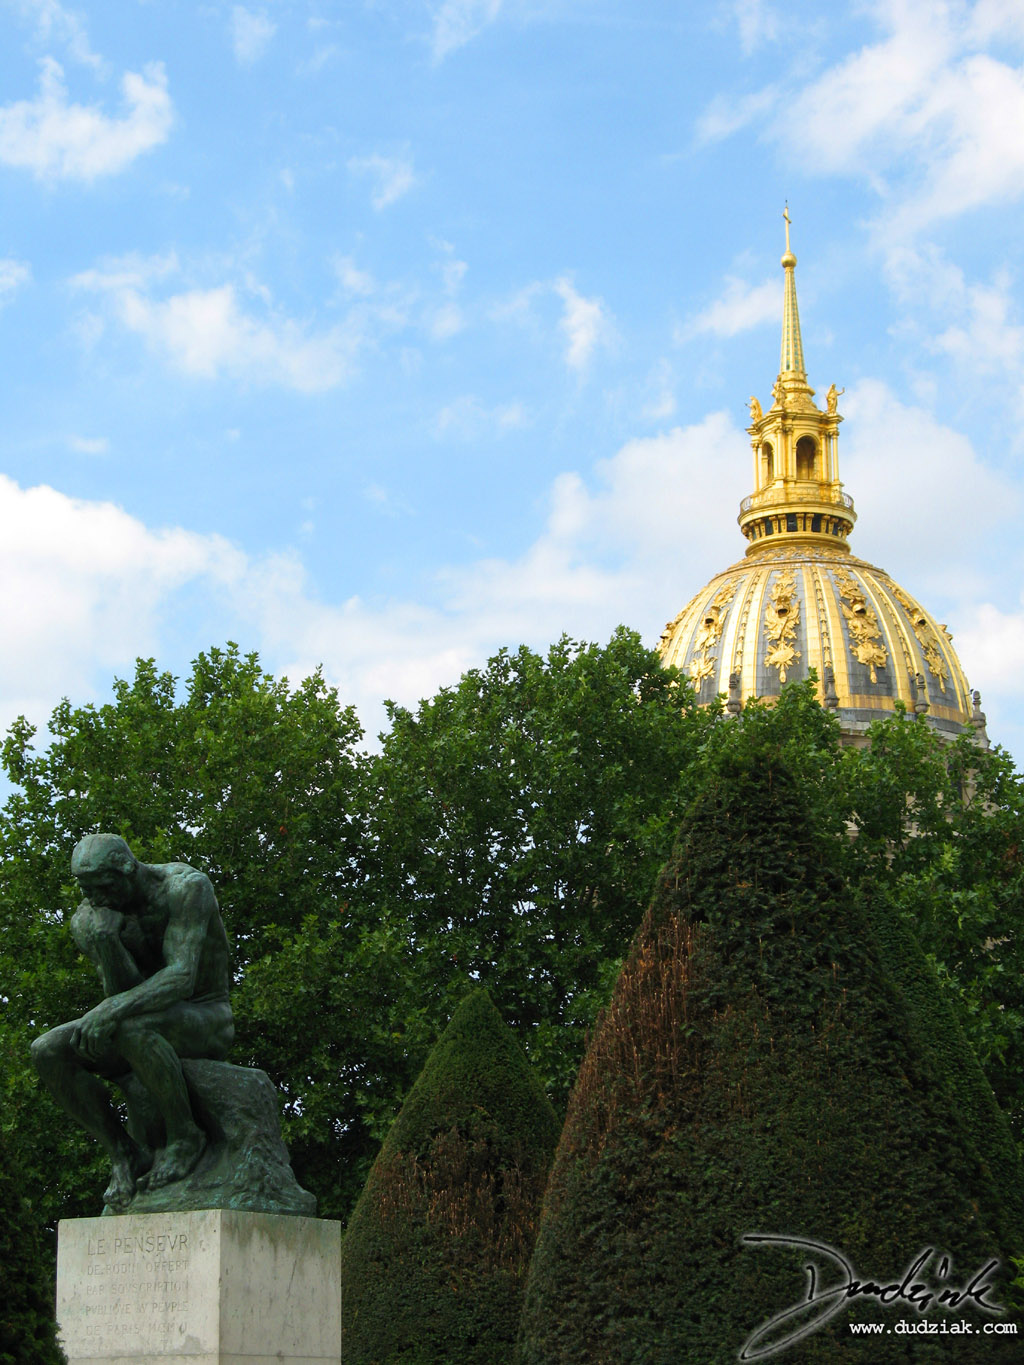 "Picture of ""The Thinker"" (le Penseur) sculpture by Rodin in the Rodin Museum (Musee Rodin) in Paris with the dome of Les Invalides in the background."